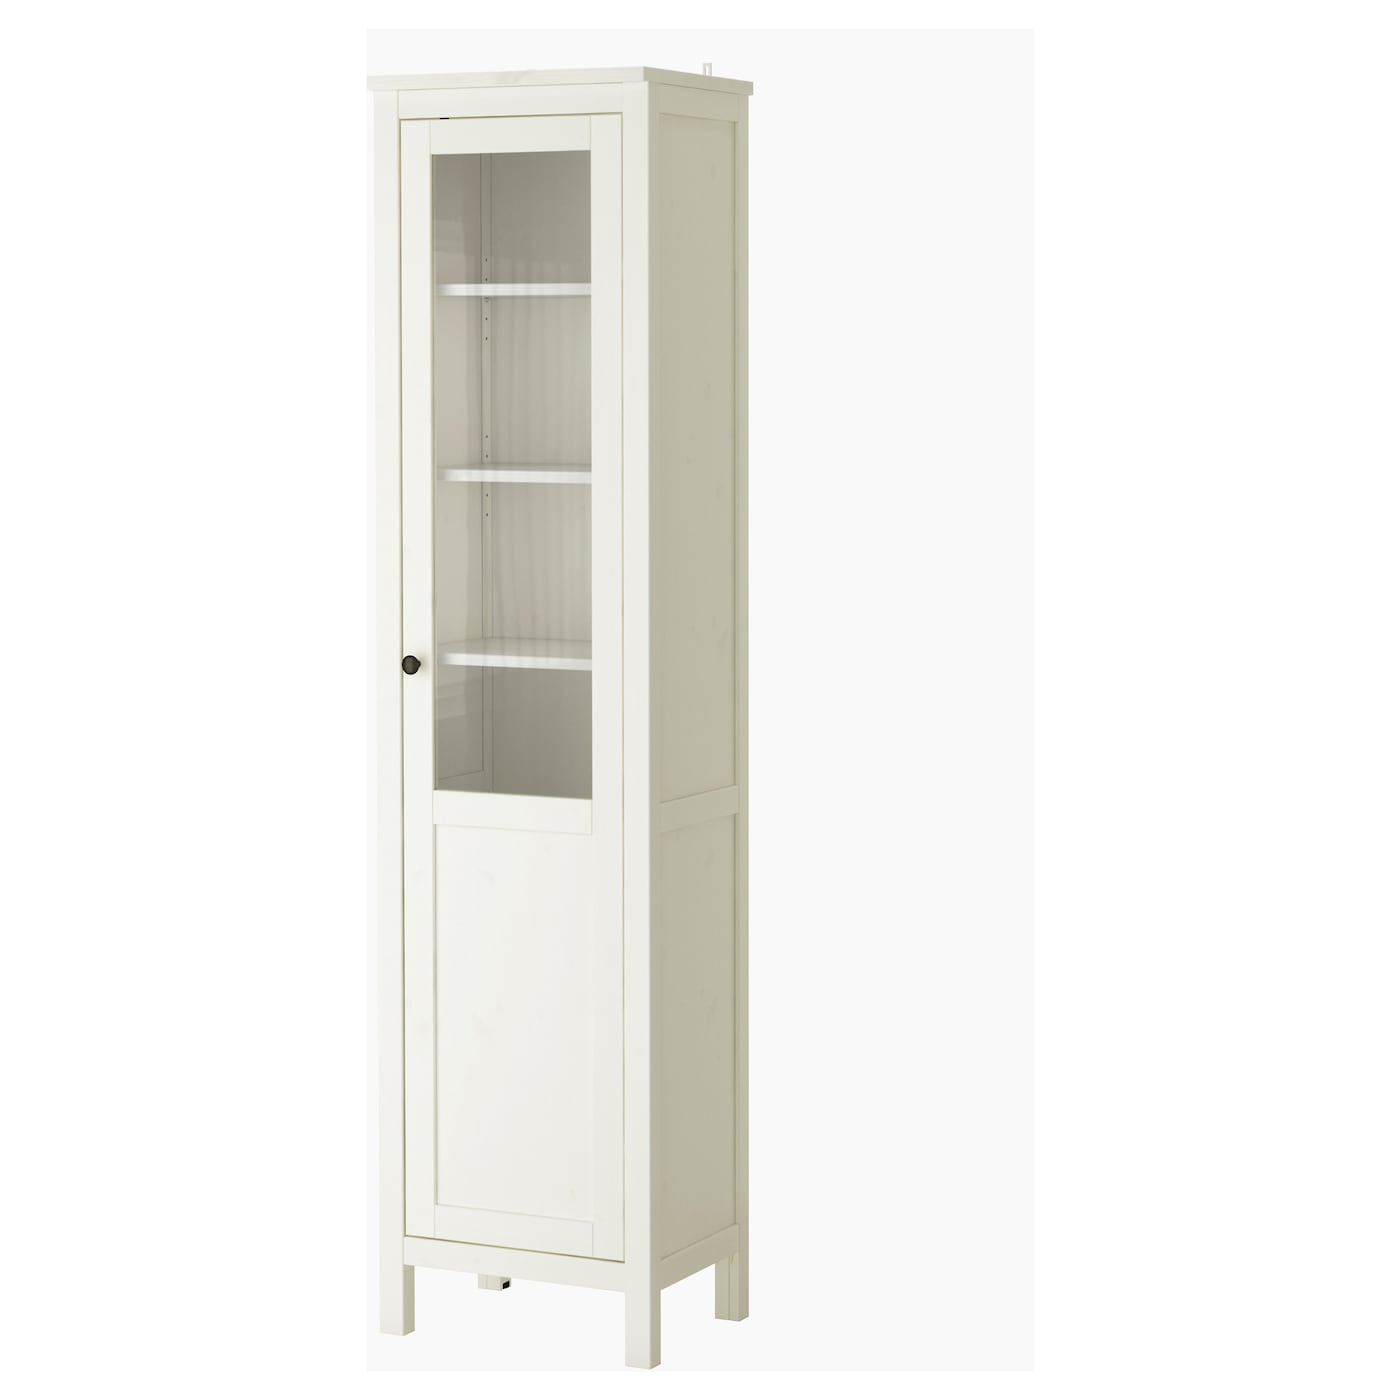 hemnes cabinet with panel glass door white stain 49 x 197 cm ikea. Black Bedroom Furniture Sets. Home Design Ideas